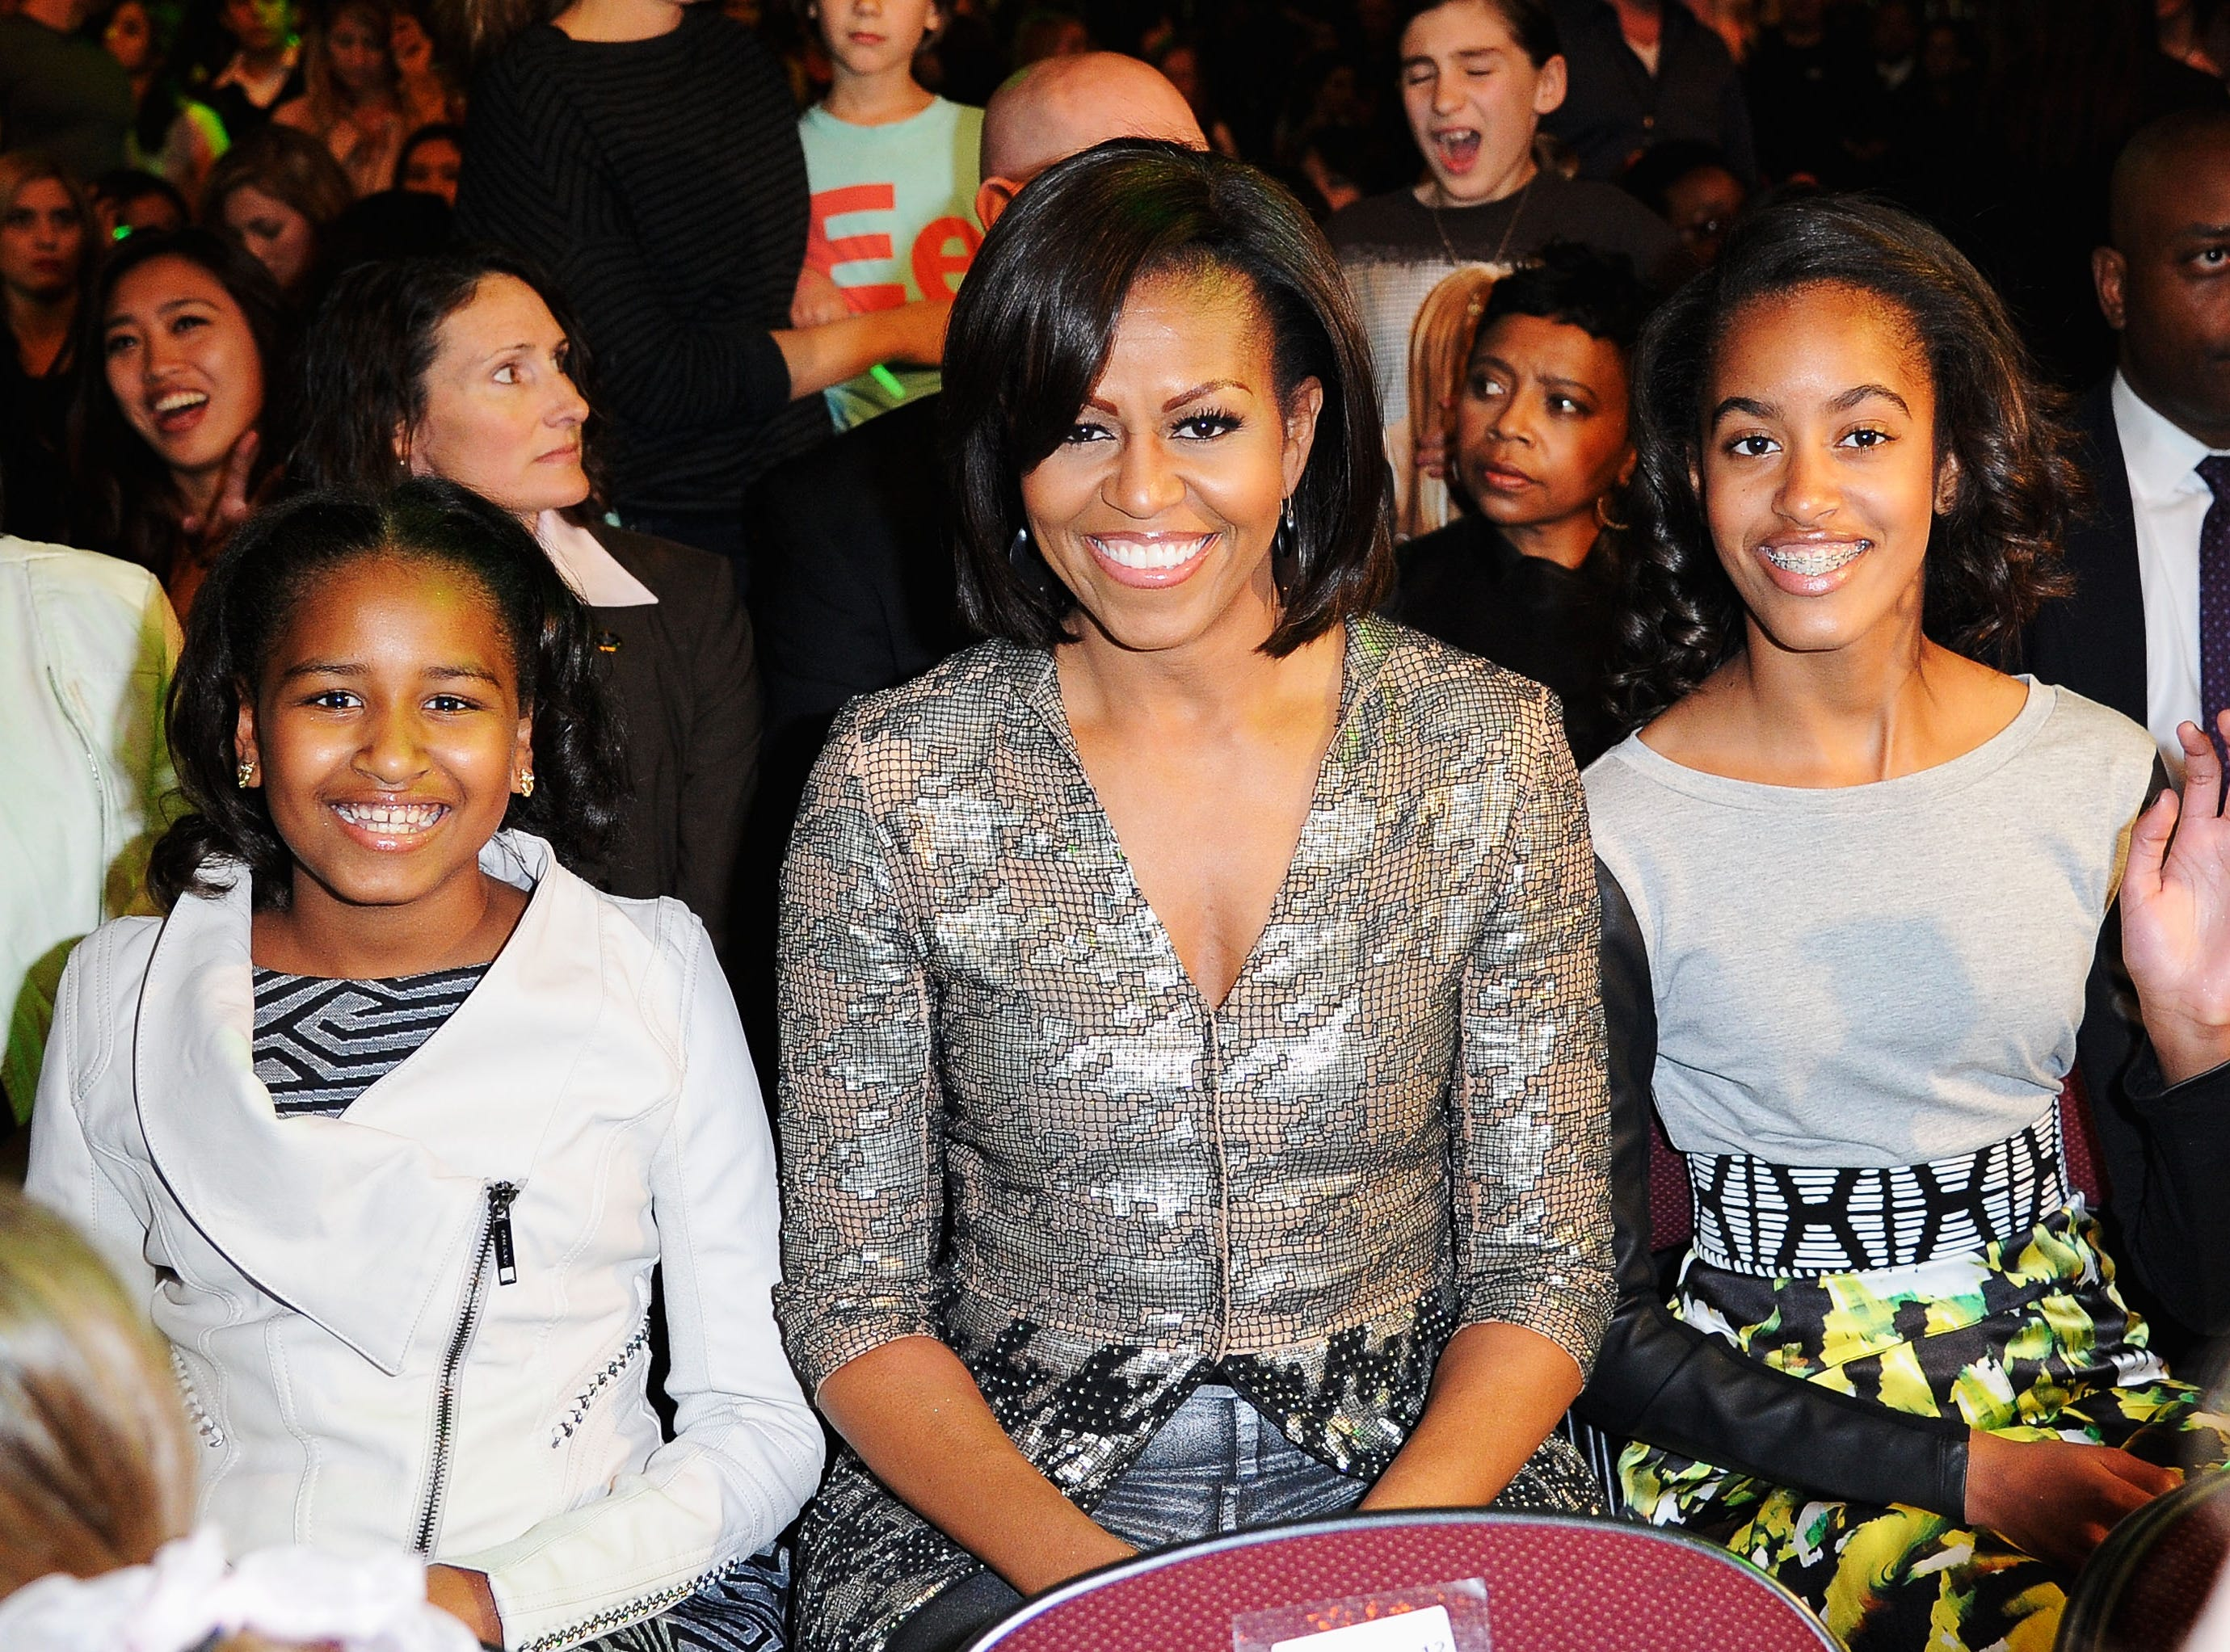 Sasha Obama, First Lady Michelle Obama and Malia Obama in 2012